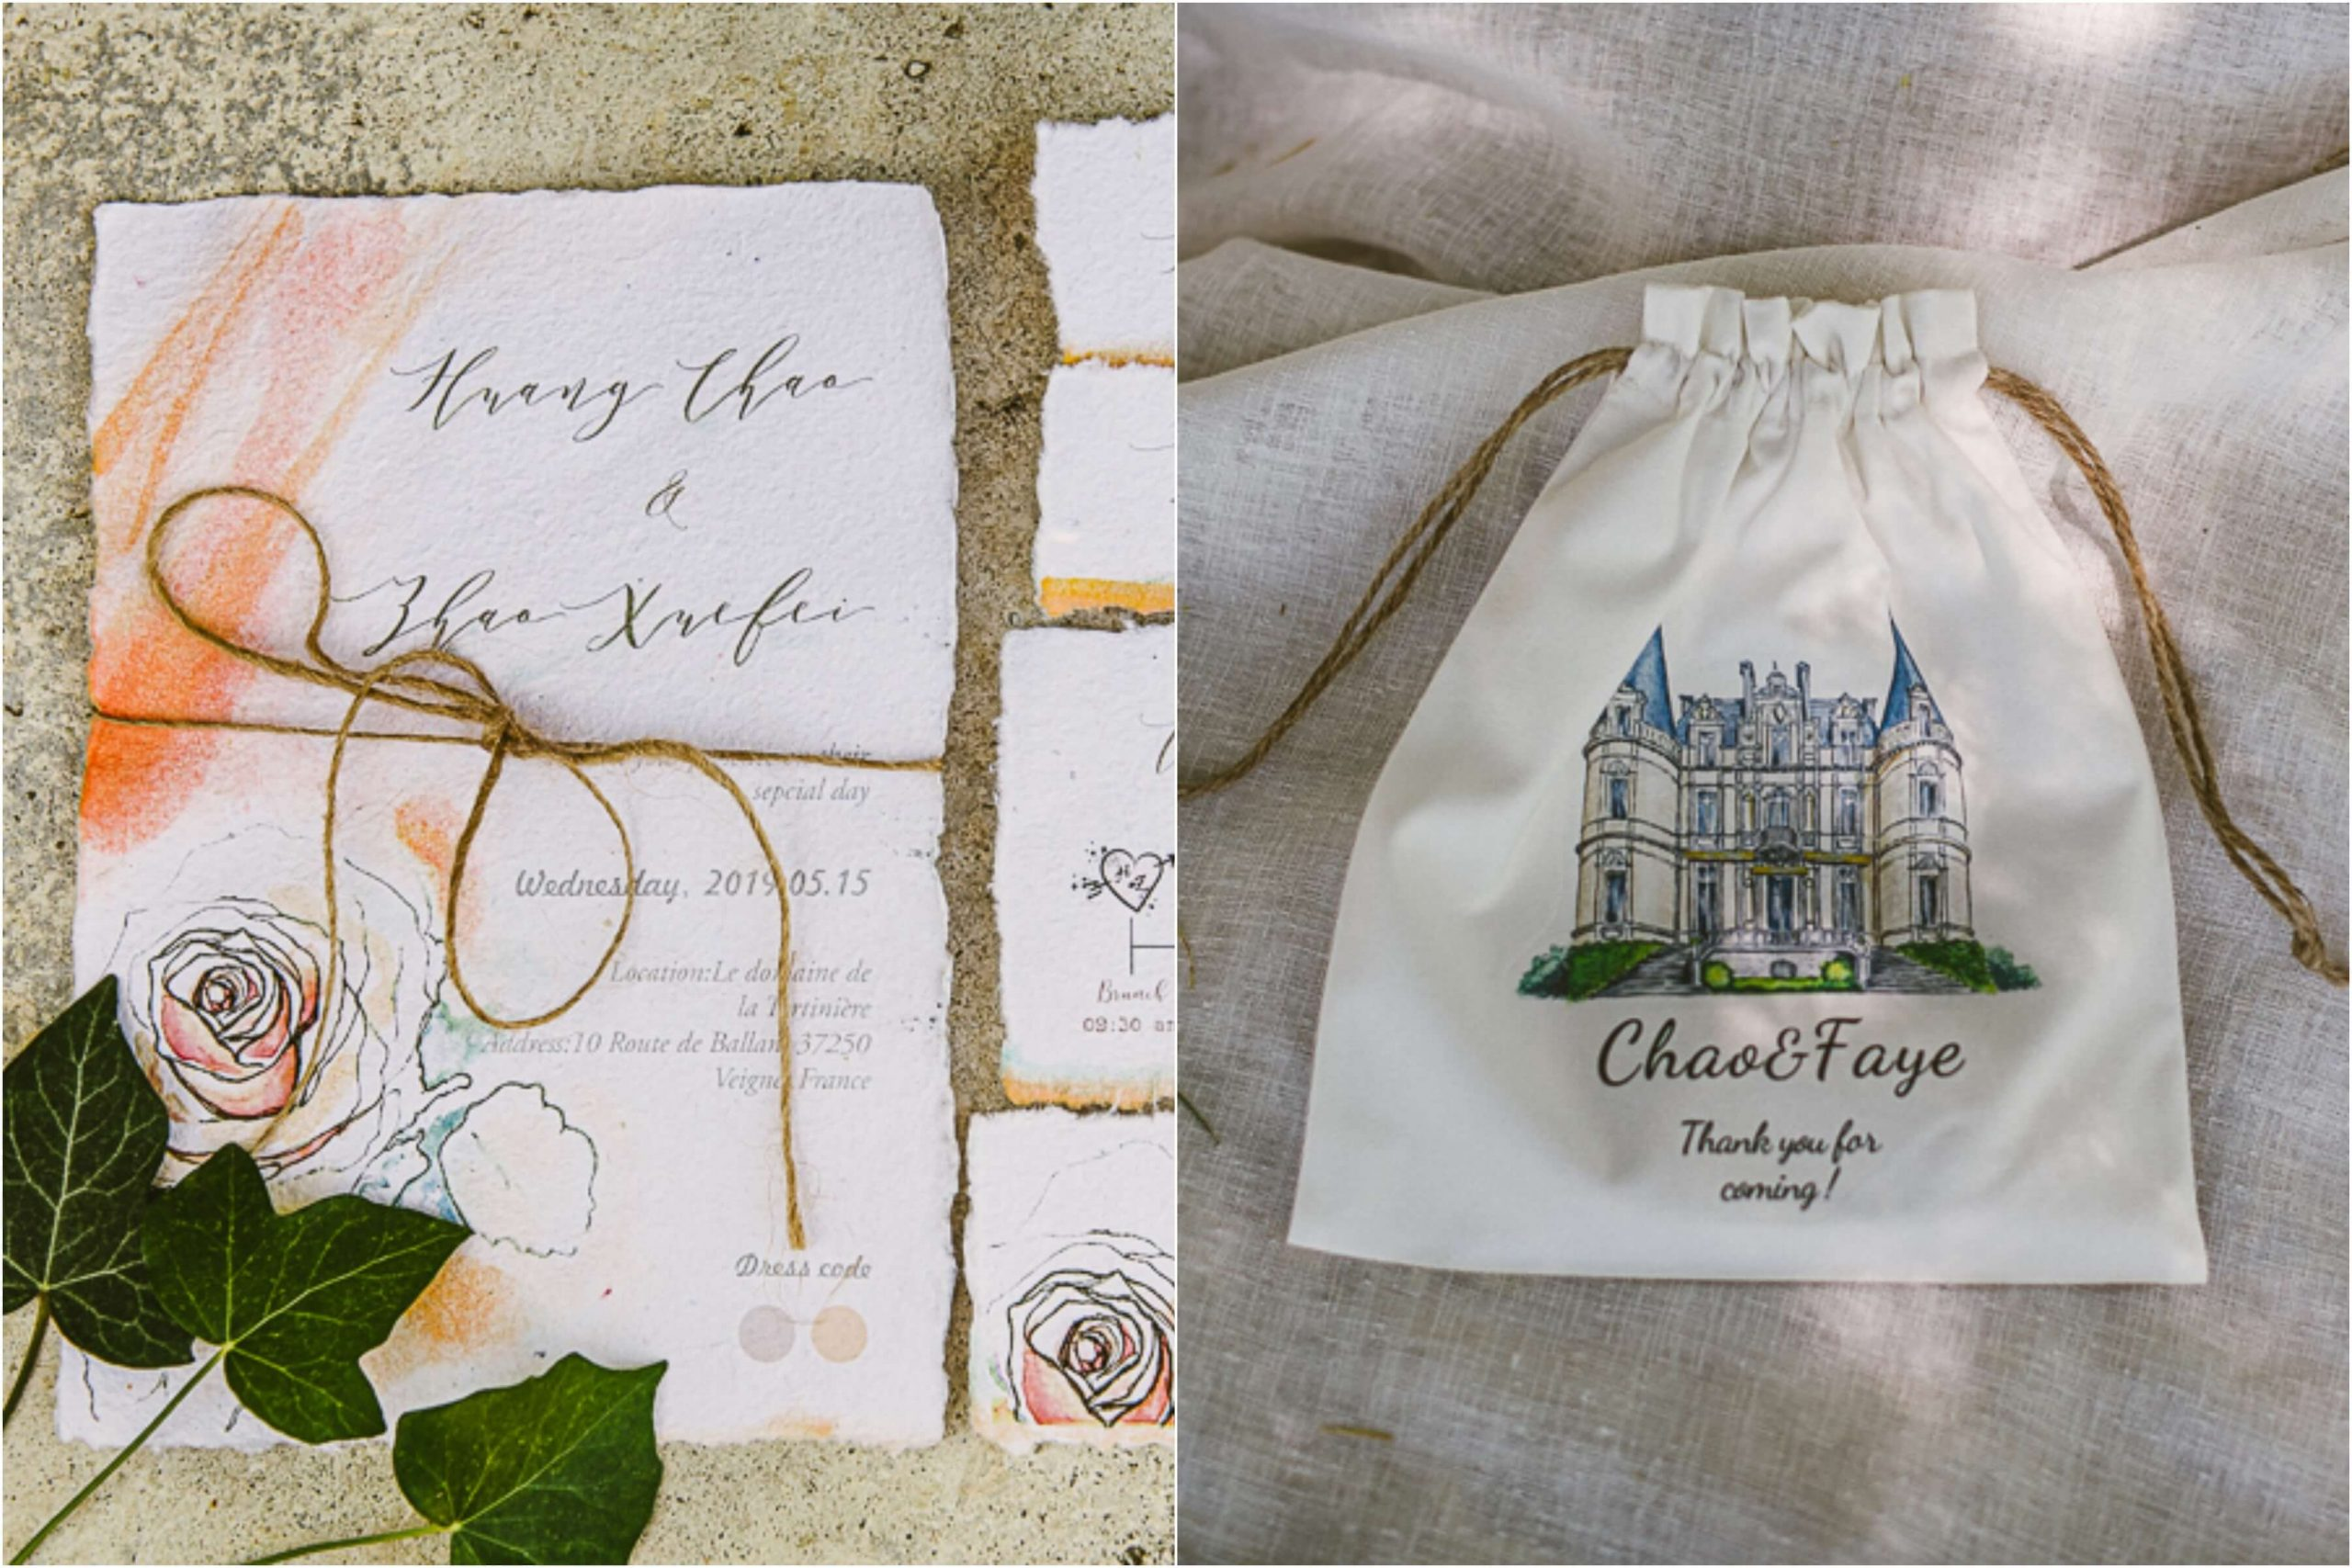 wedding invitations and thank you gift